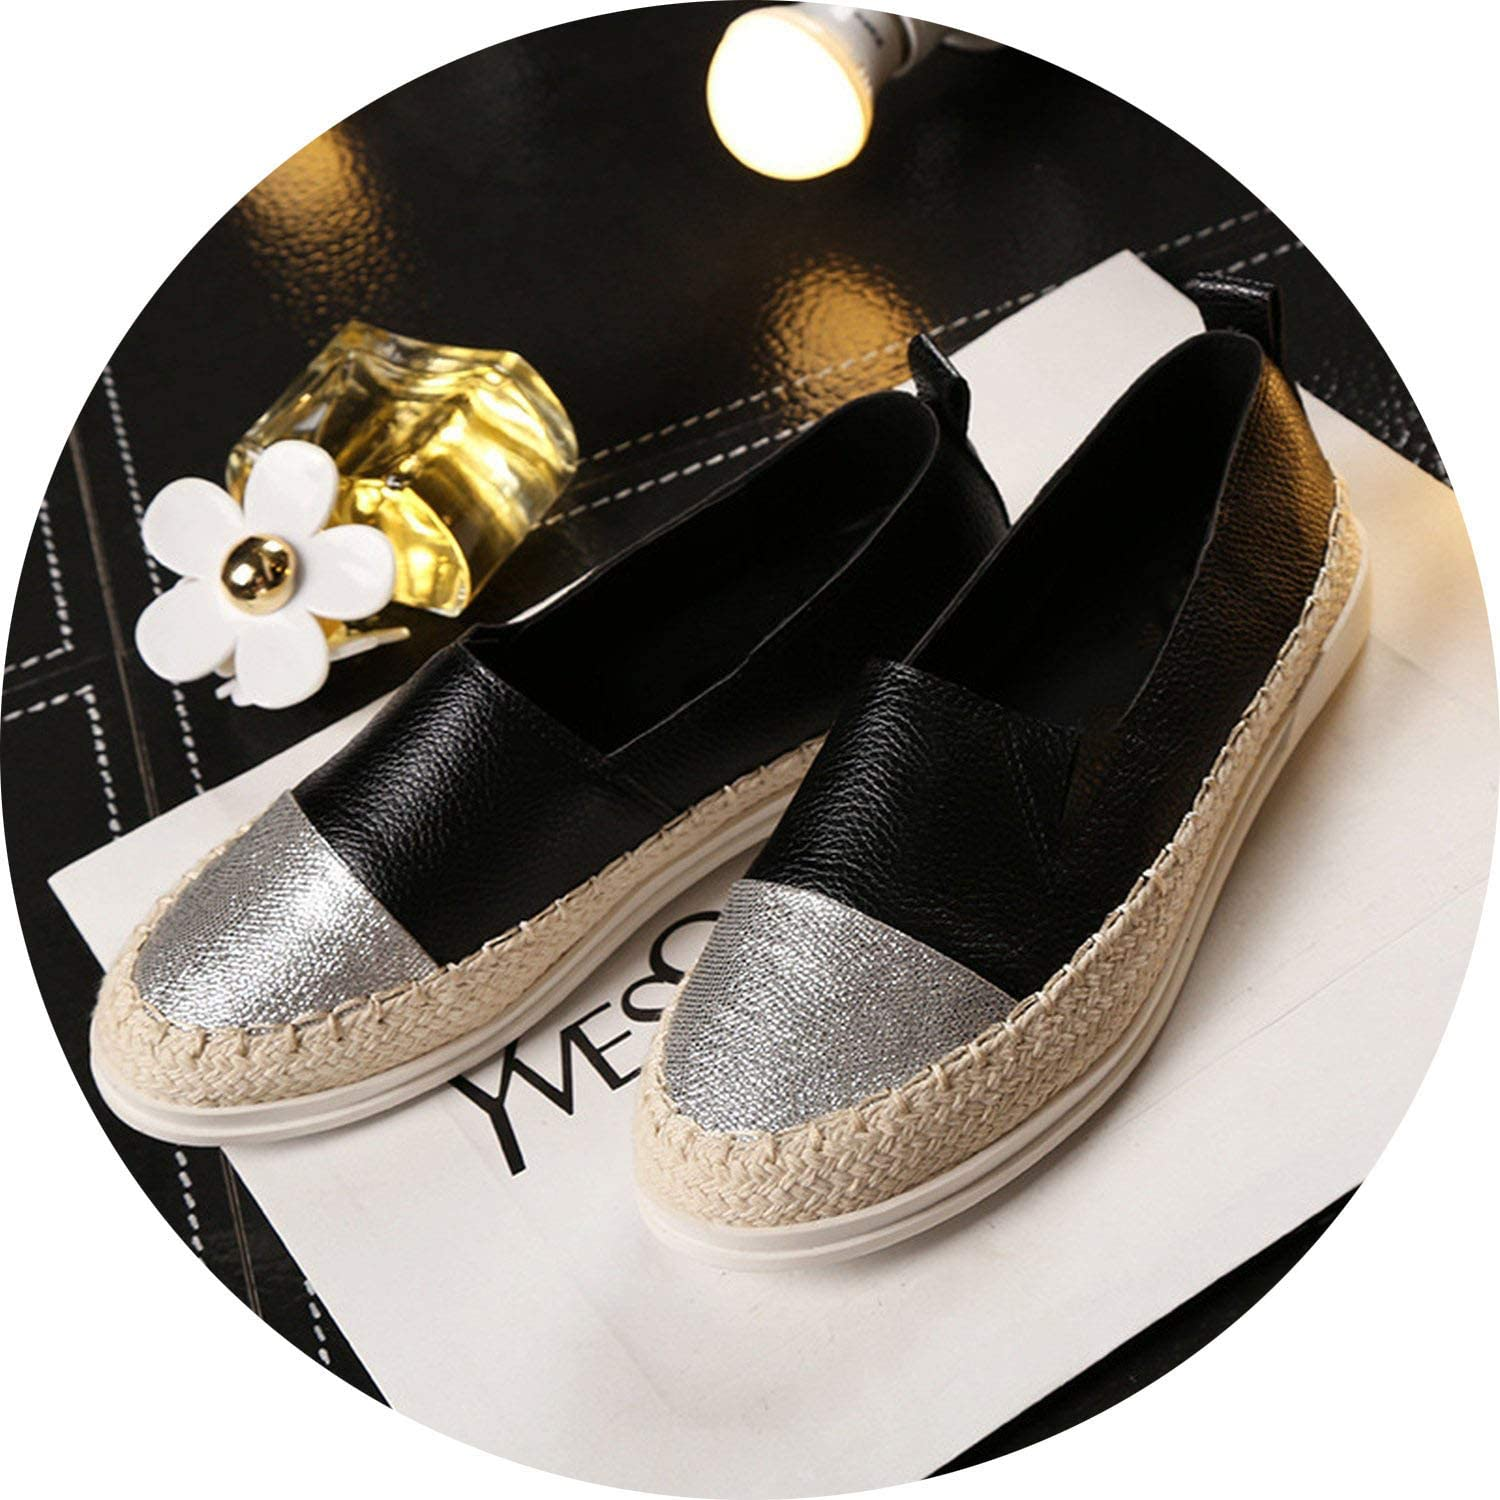 Crazy-shop Fashion Flat Black shoes for Women Casual Slip on Loafers Ballerina Flats Woman Espadrille